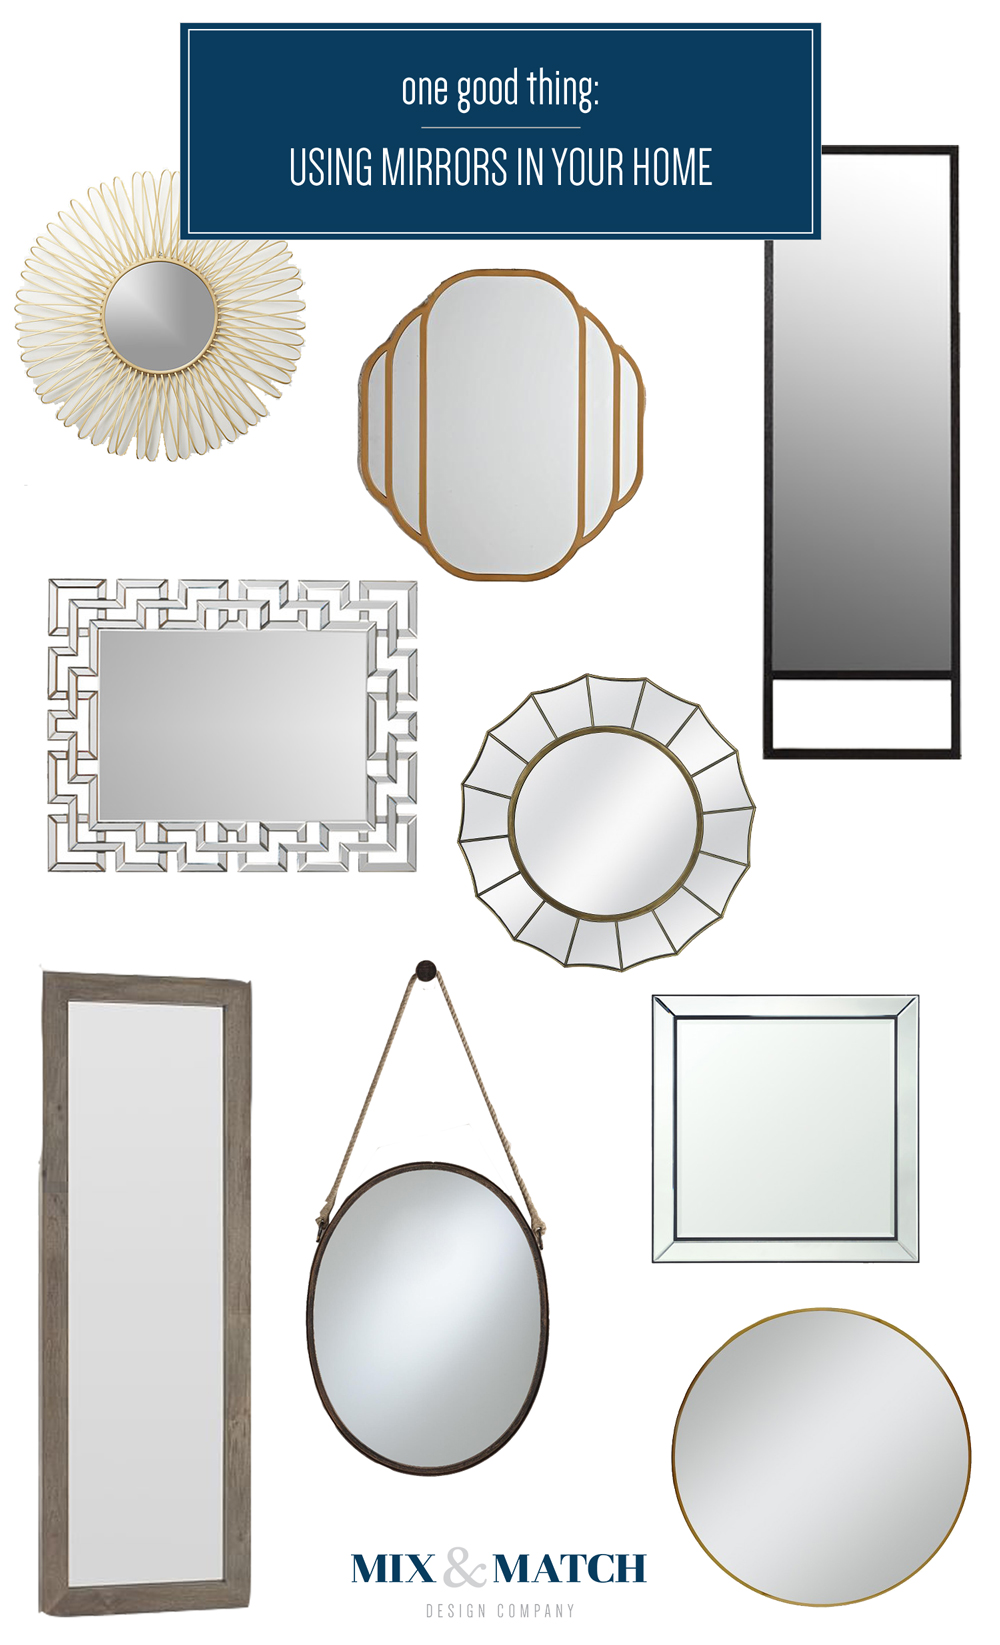 using mirrors in your home